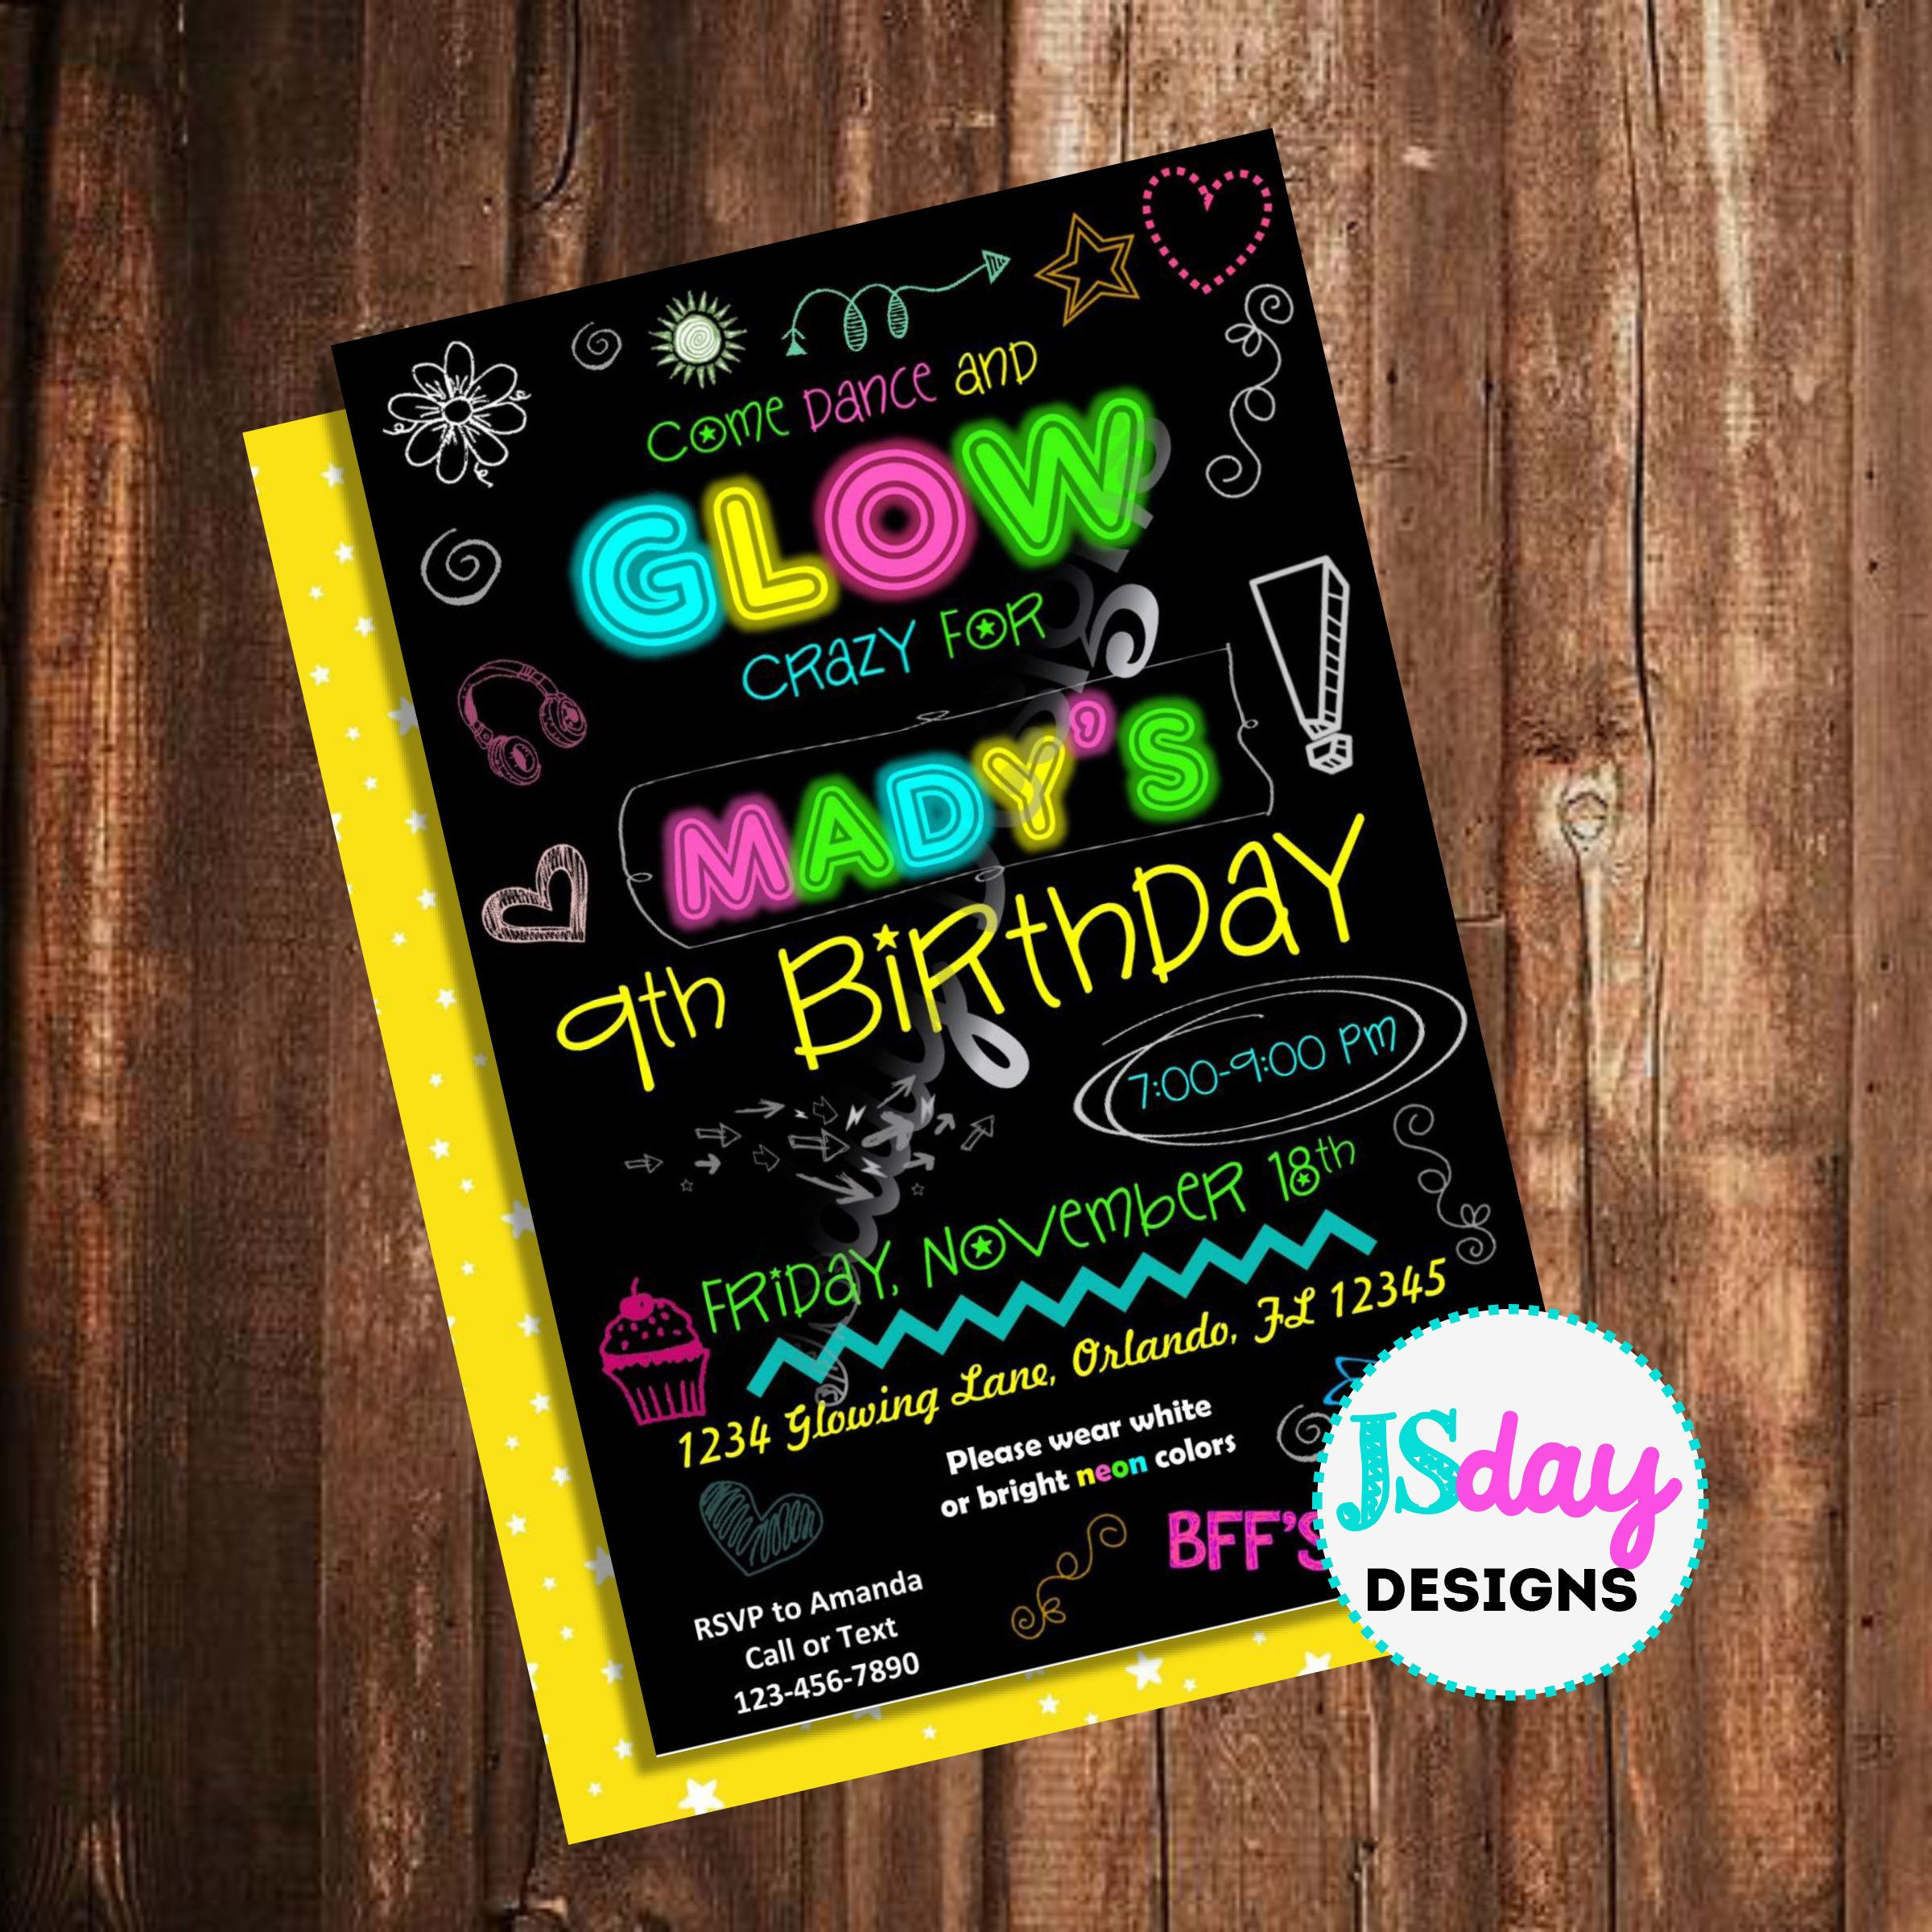 Glow Party Invite In The Dark Birthday Dance Invitation Tween Teen Black Light Neon Stick Doodle Girl By JSdayDesigns